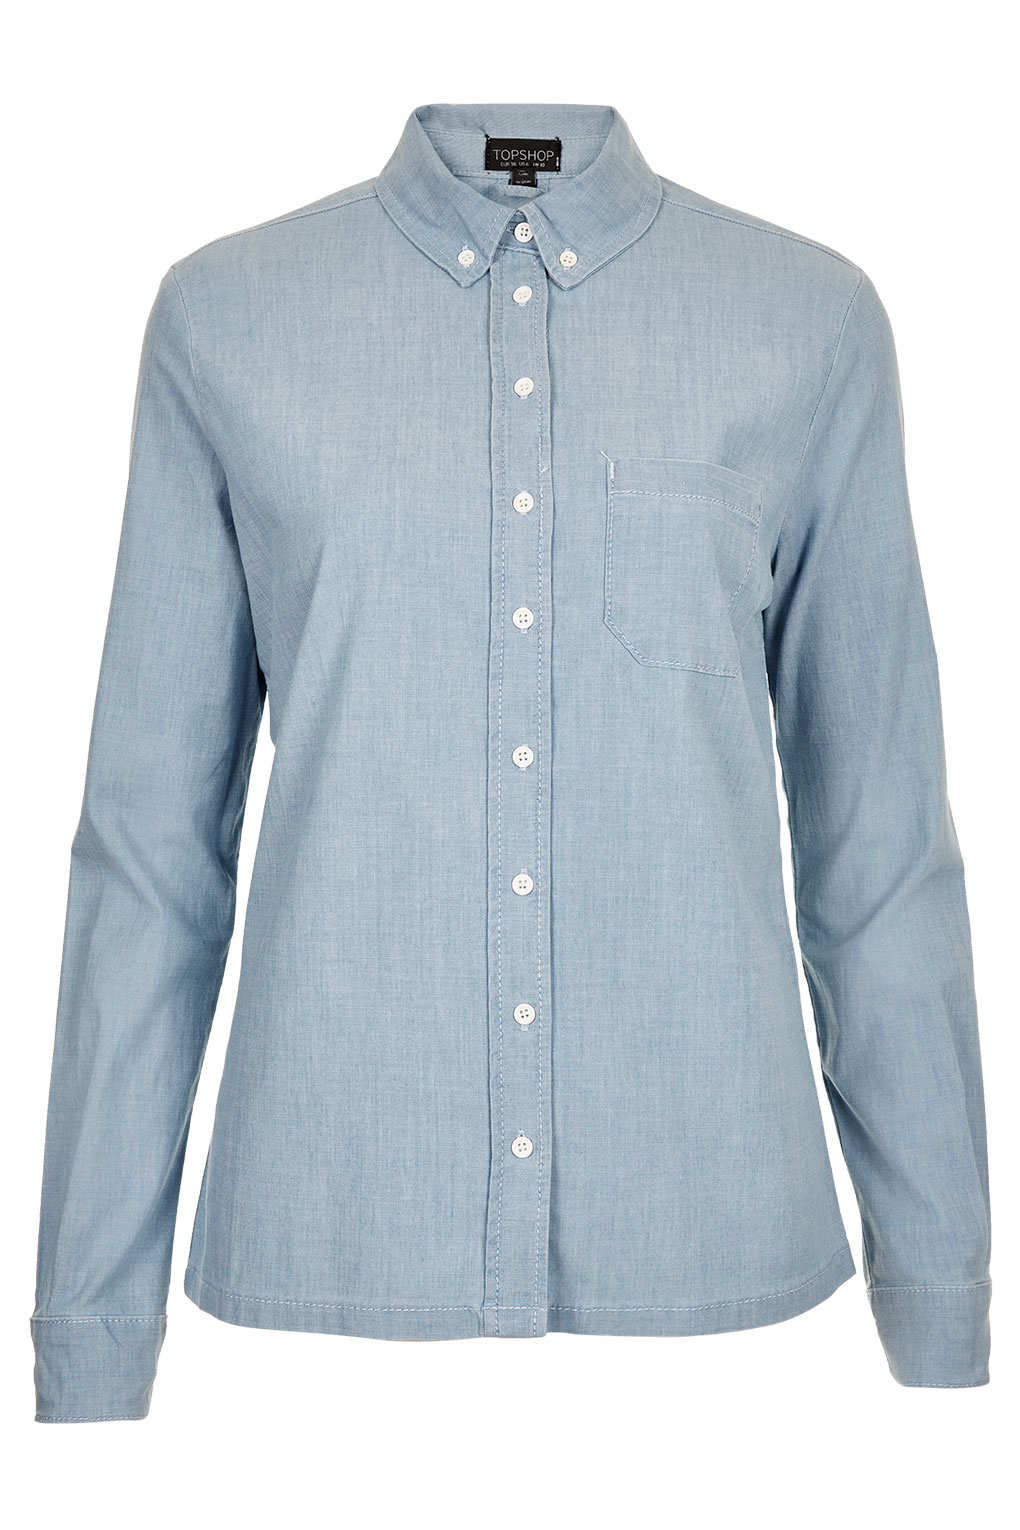 topshop-moto-blue-denim-oxford-shirt